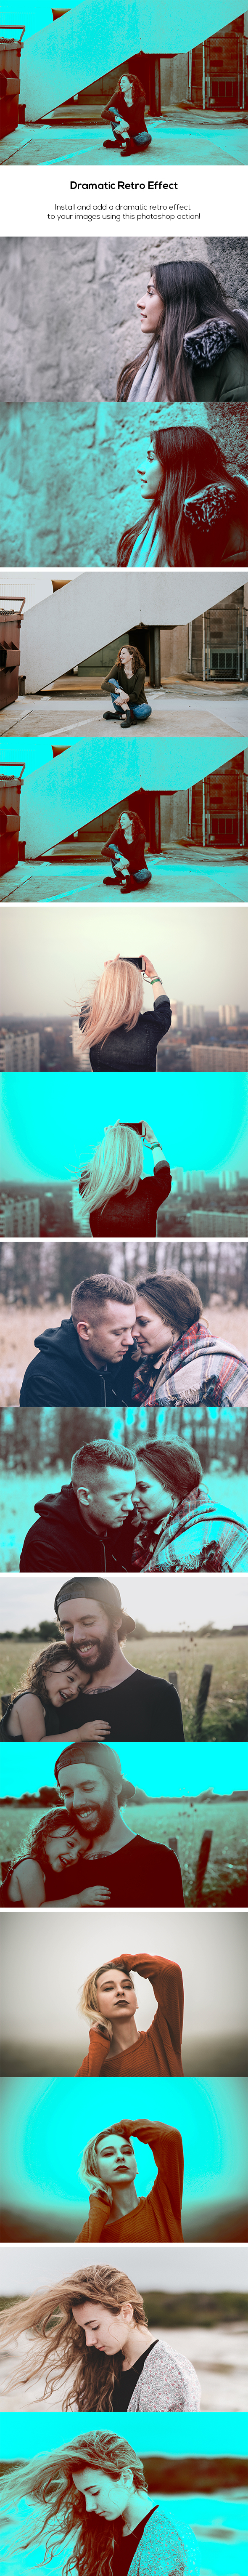 Dramatic Retro Effect - Photo Effects Actions